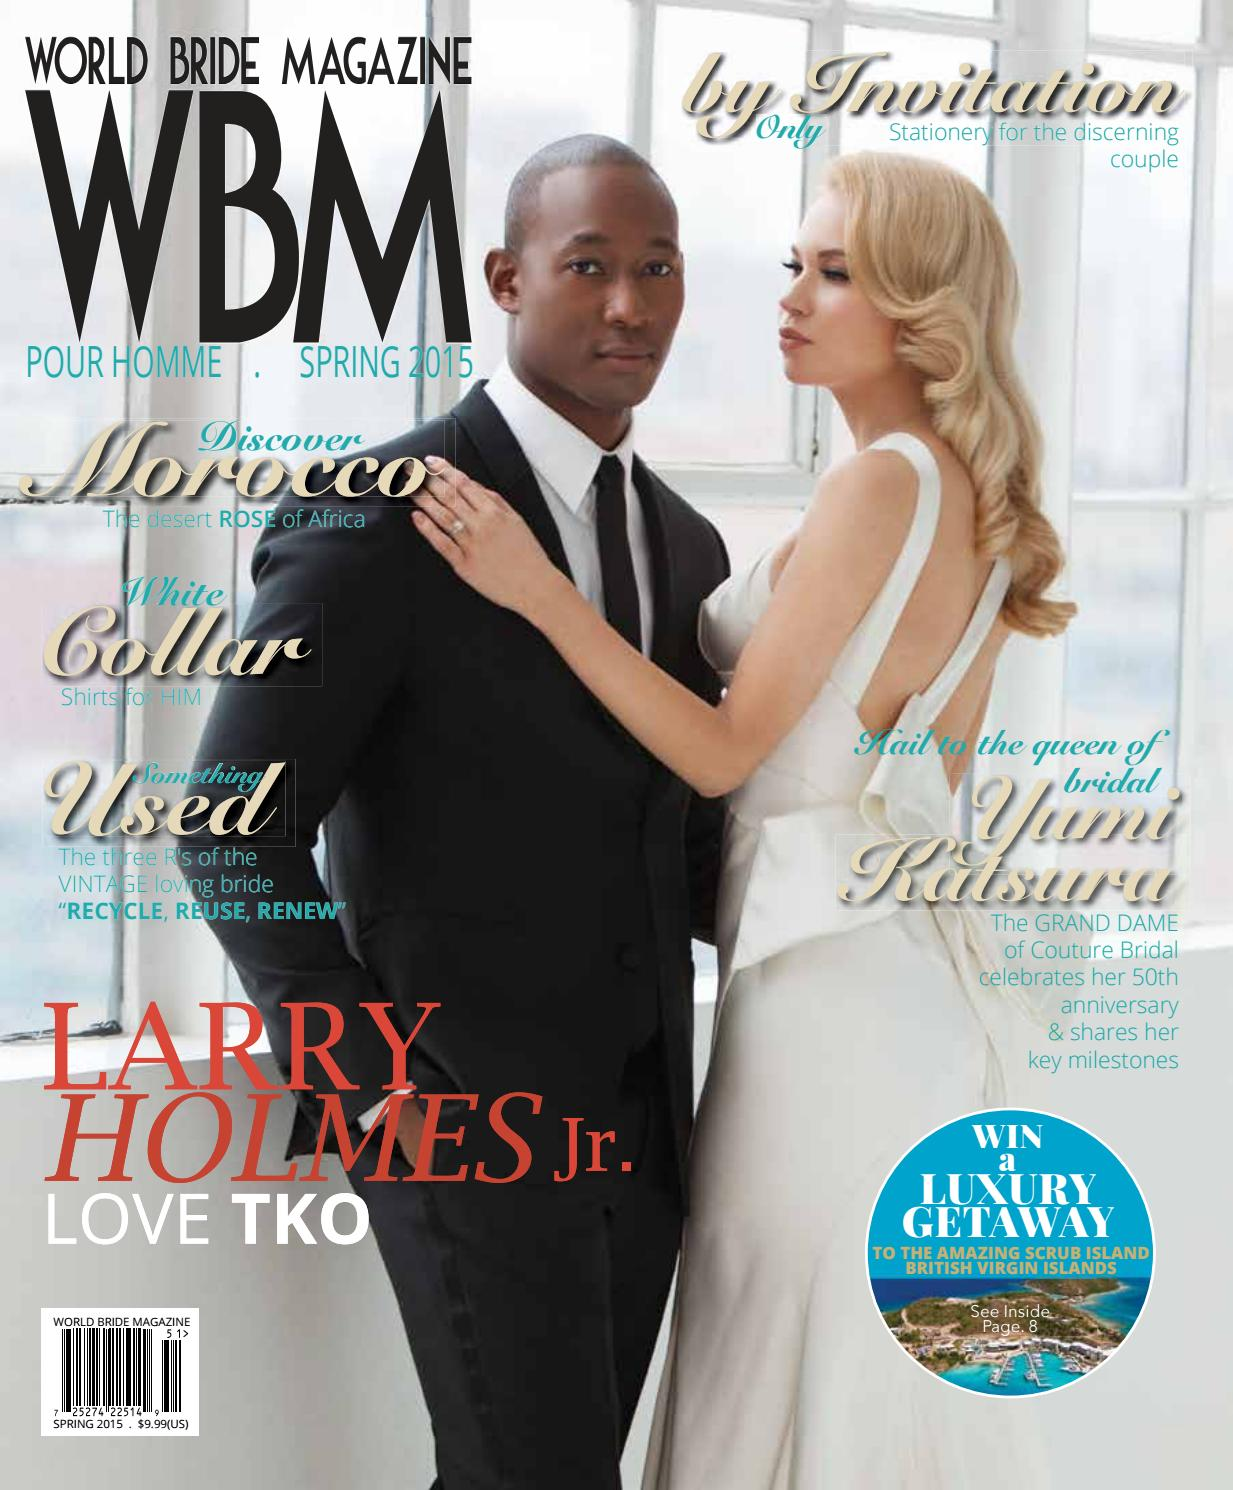 World Bride Magazine International Multi Cultural Bridal Magazine